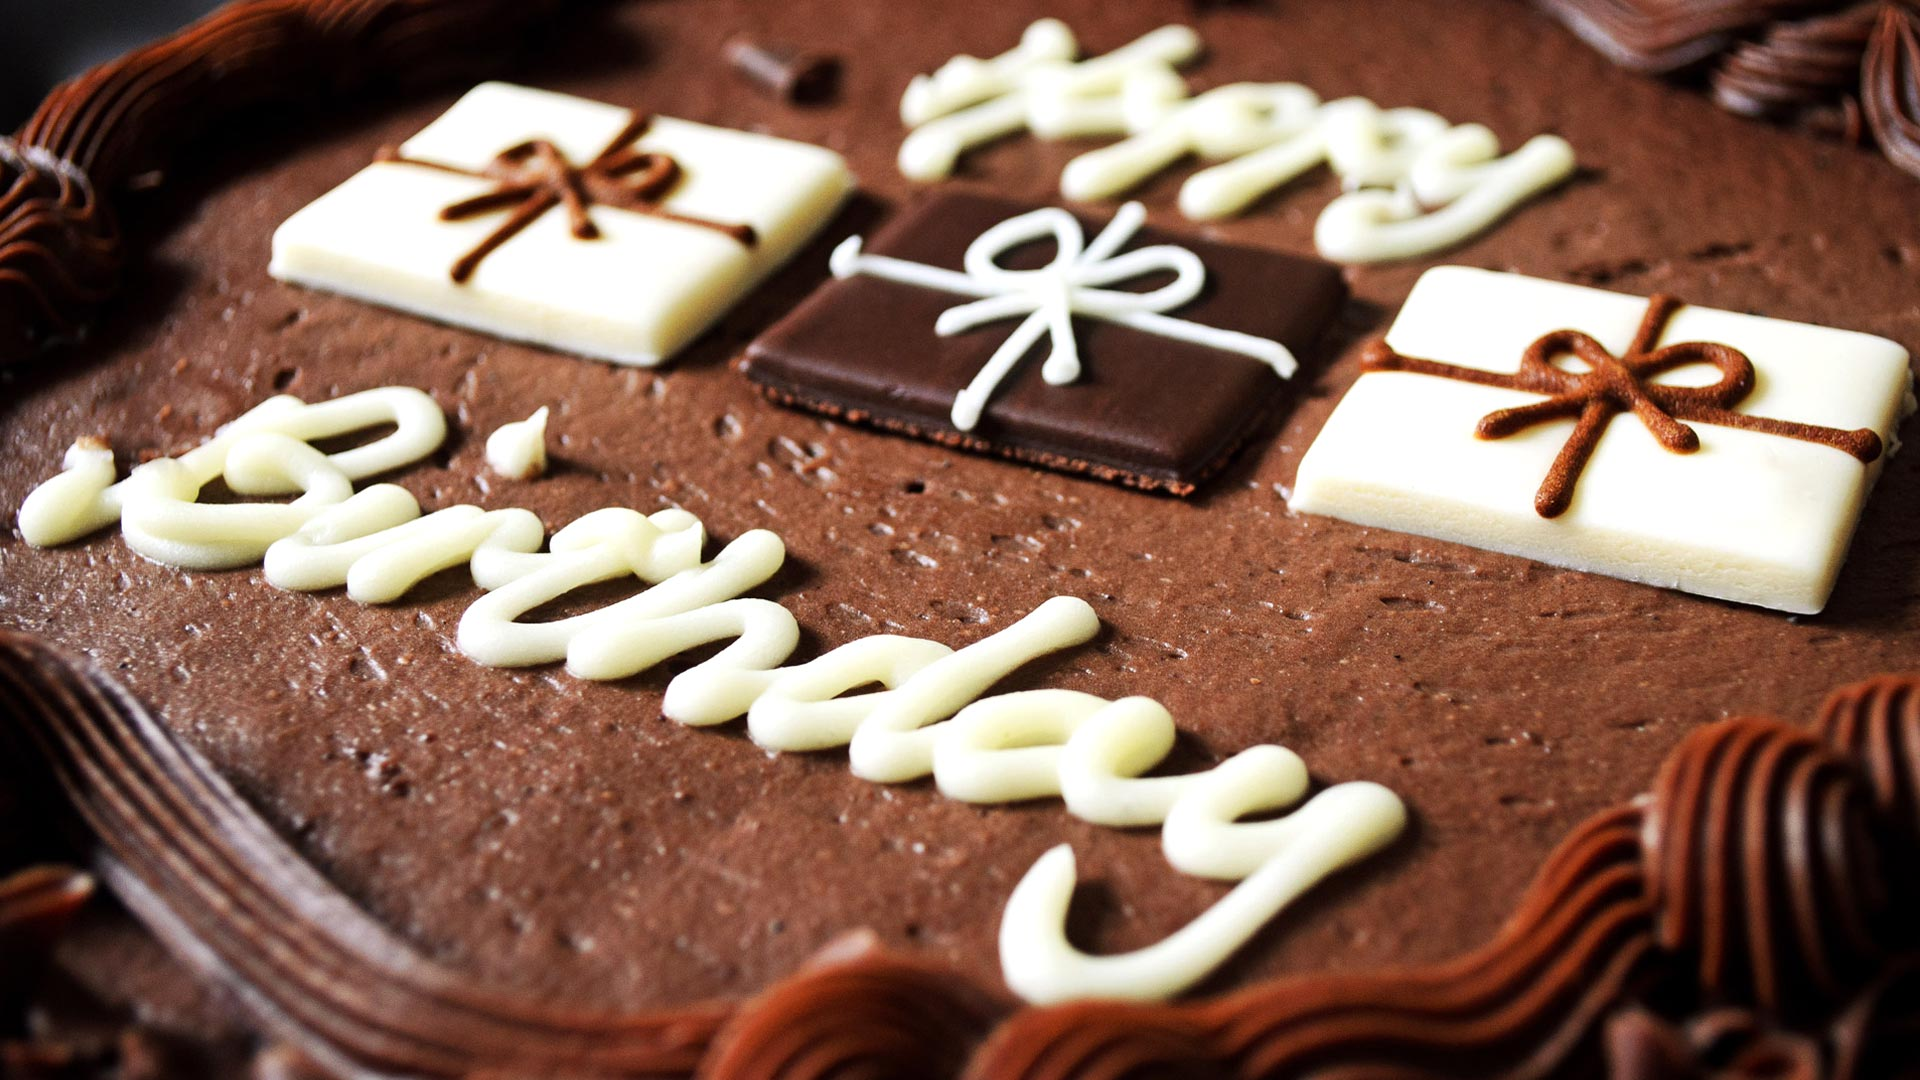 www happy birthday cake wallpaper ; Happy-birthday-chocolate-cake-wallpaper-HD-desktop